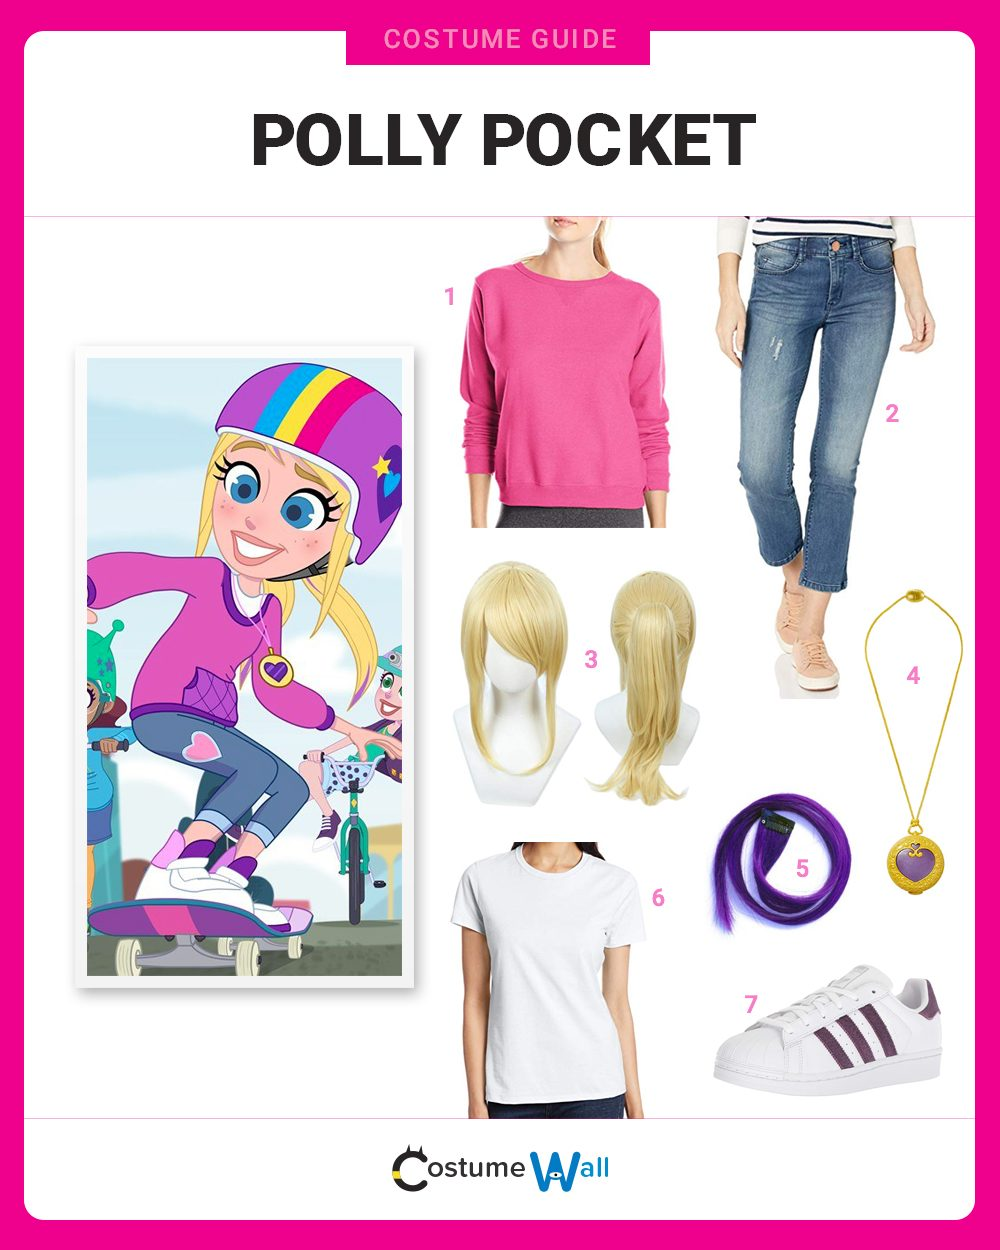 Polly Pocket Costume Guide